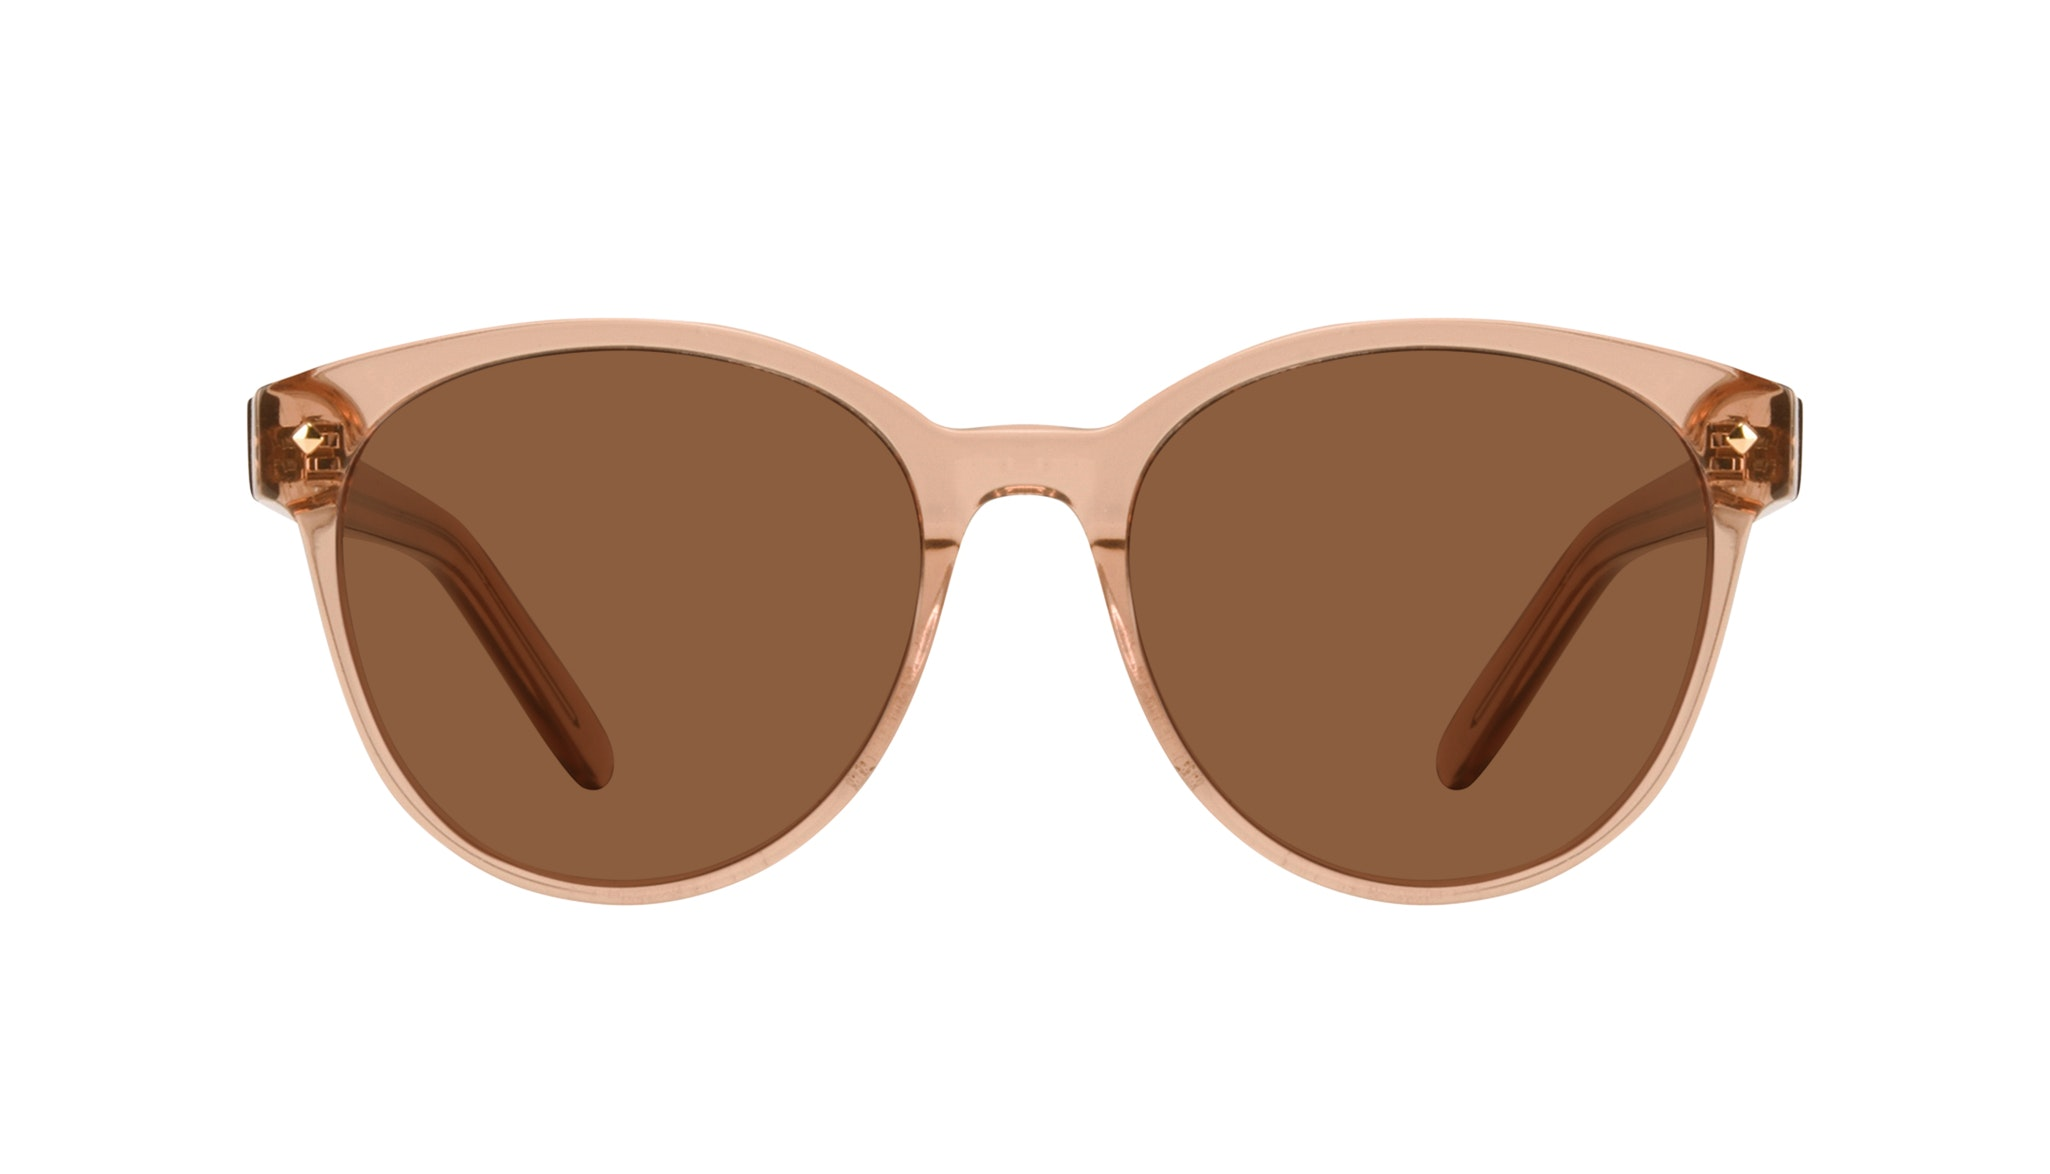 Affordable Fashion Glasses Round Sunglasses Women Eclipse Toffee